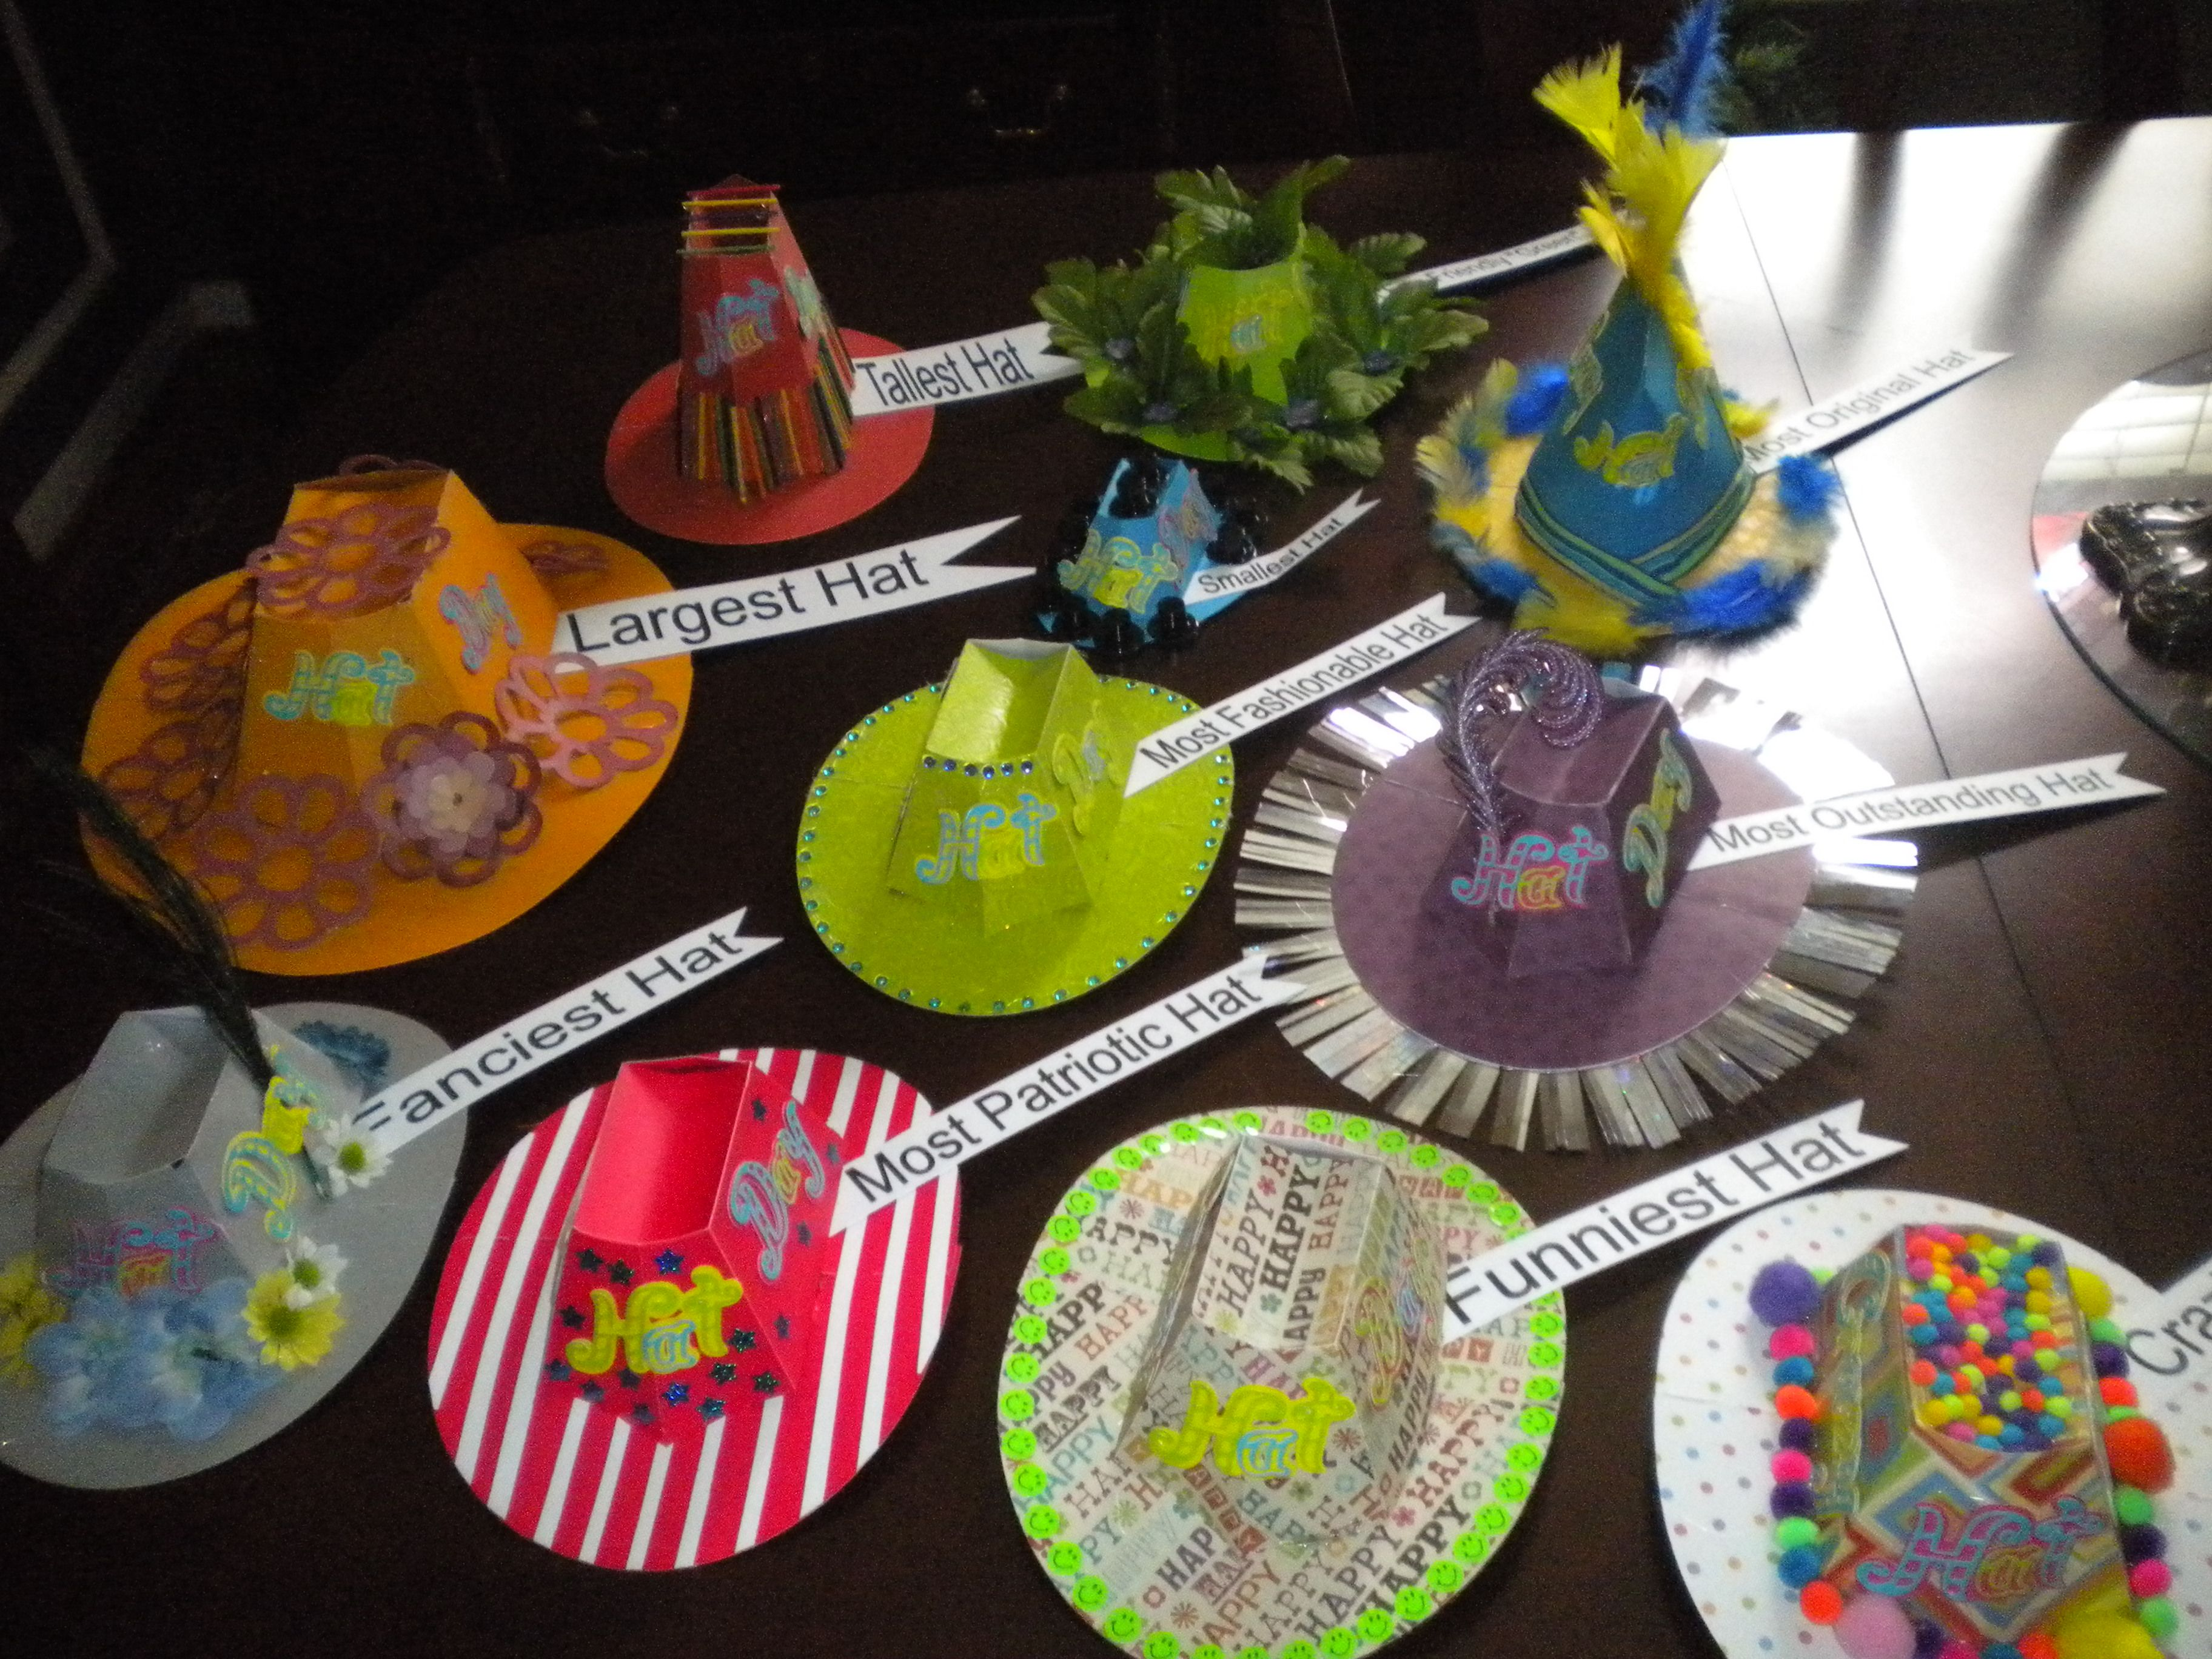 Paper 3-D Hats Used As Awards For The Various Categories